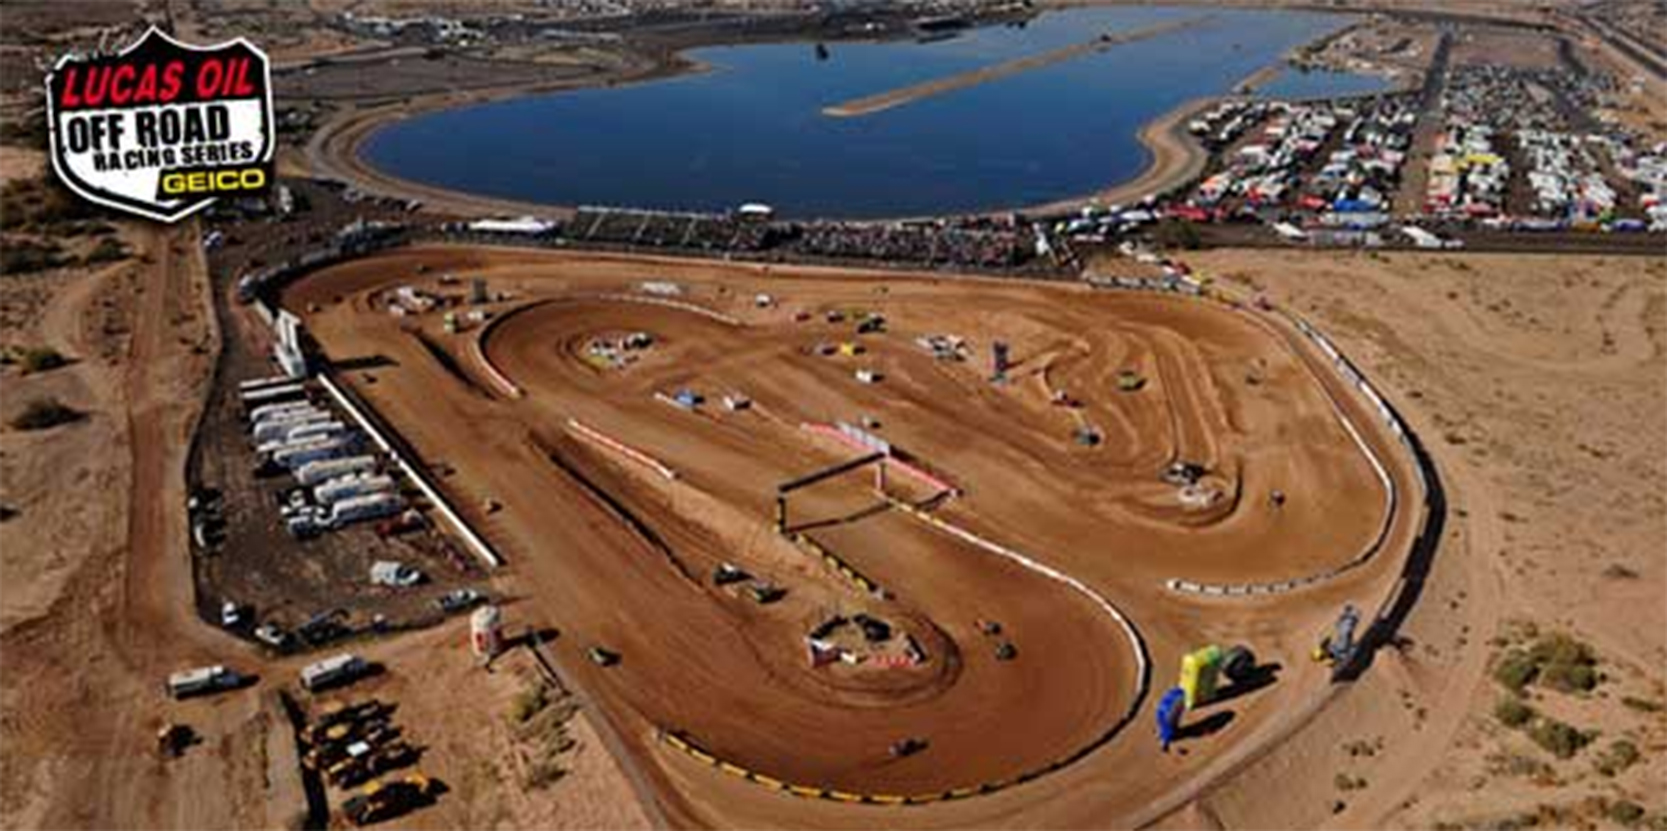 Lucas Oil Off Road Race Series - Off Road Nationals, Challenge Cup - Wild Horse Pass Motorsports Park @ Wild Horse Pass Motorsports Park